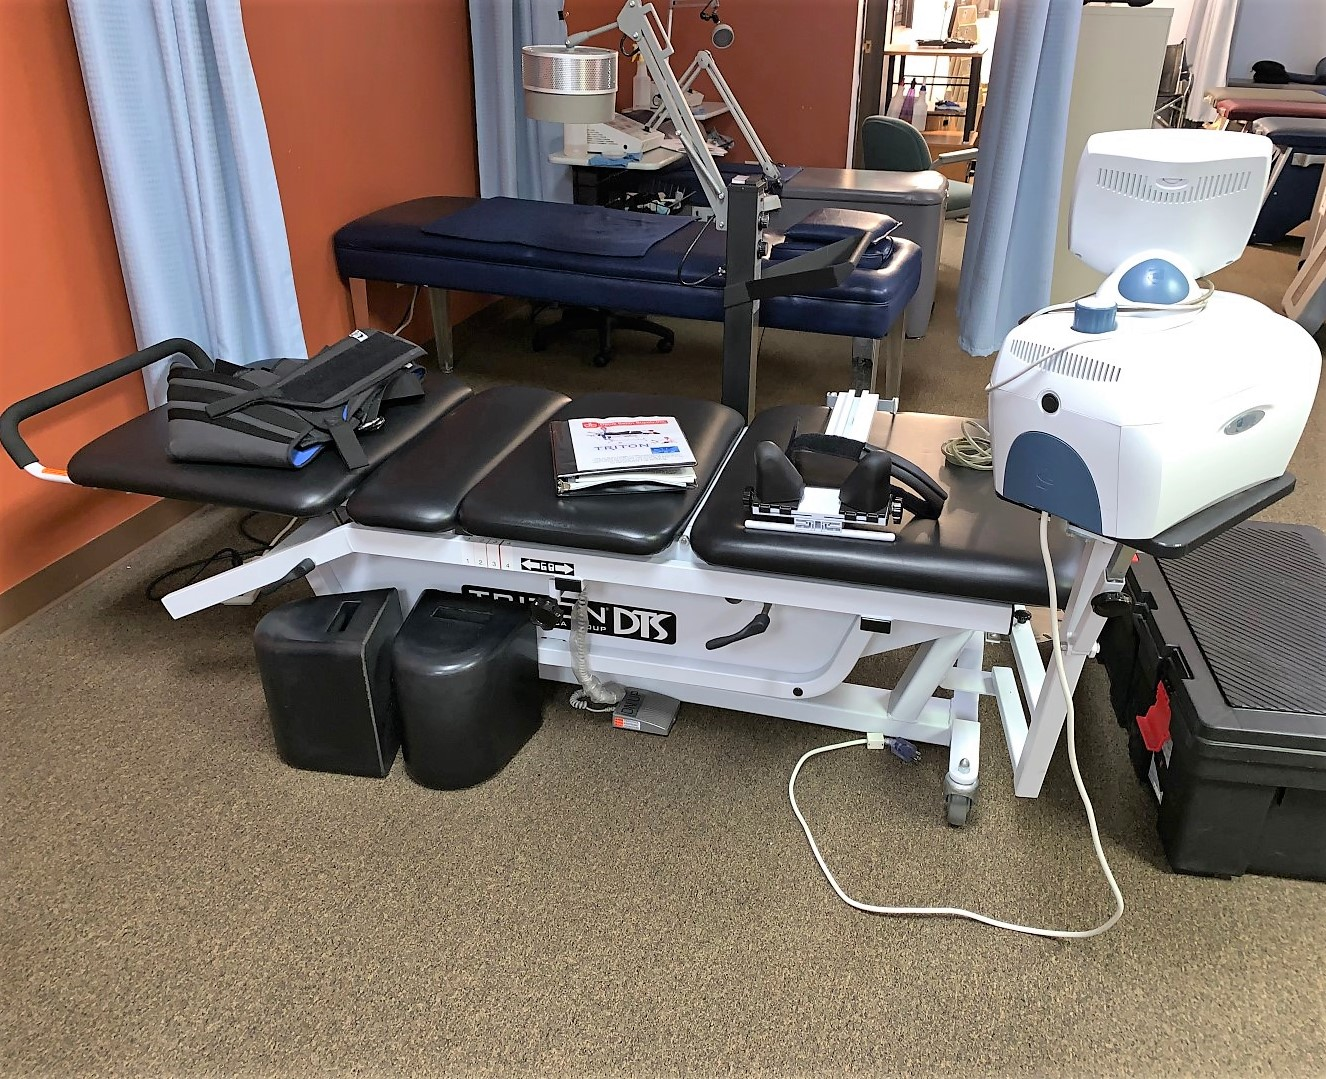 Chiropractor's Equipment & Office Online Auction In Indianapolis, IN